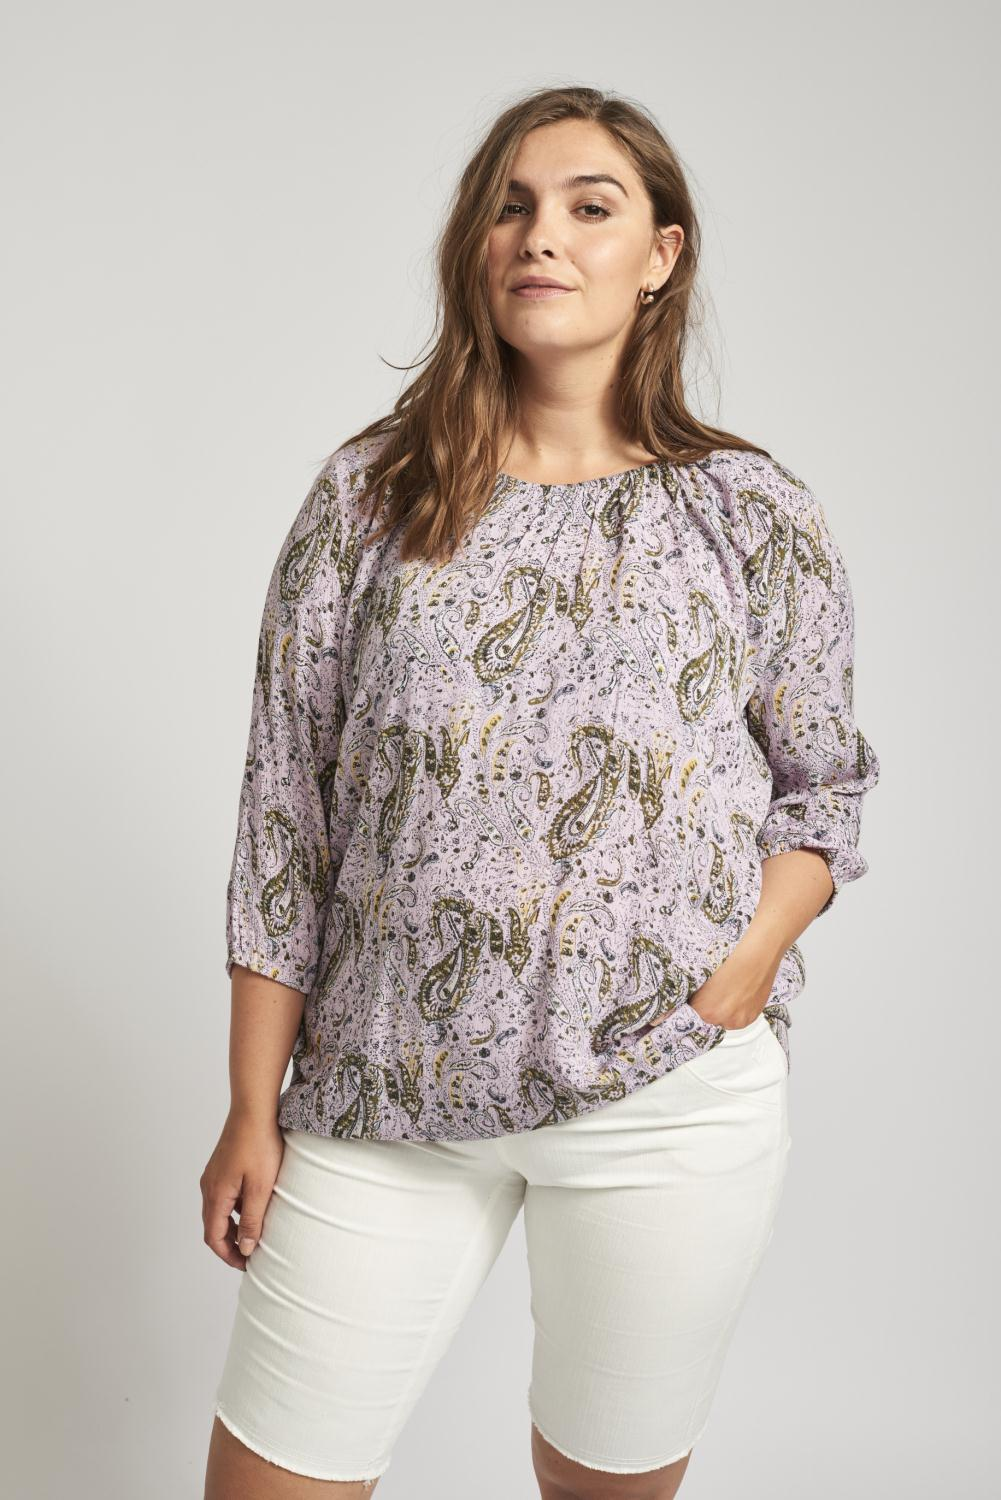 gallery-6630-for-AD3027